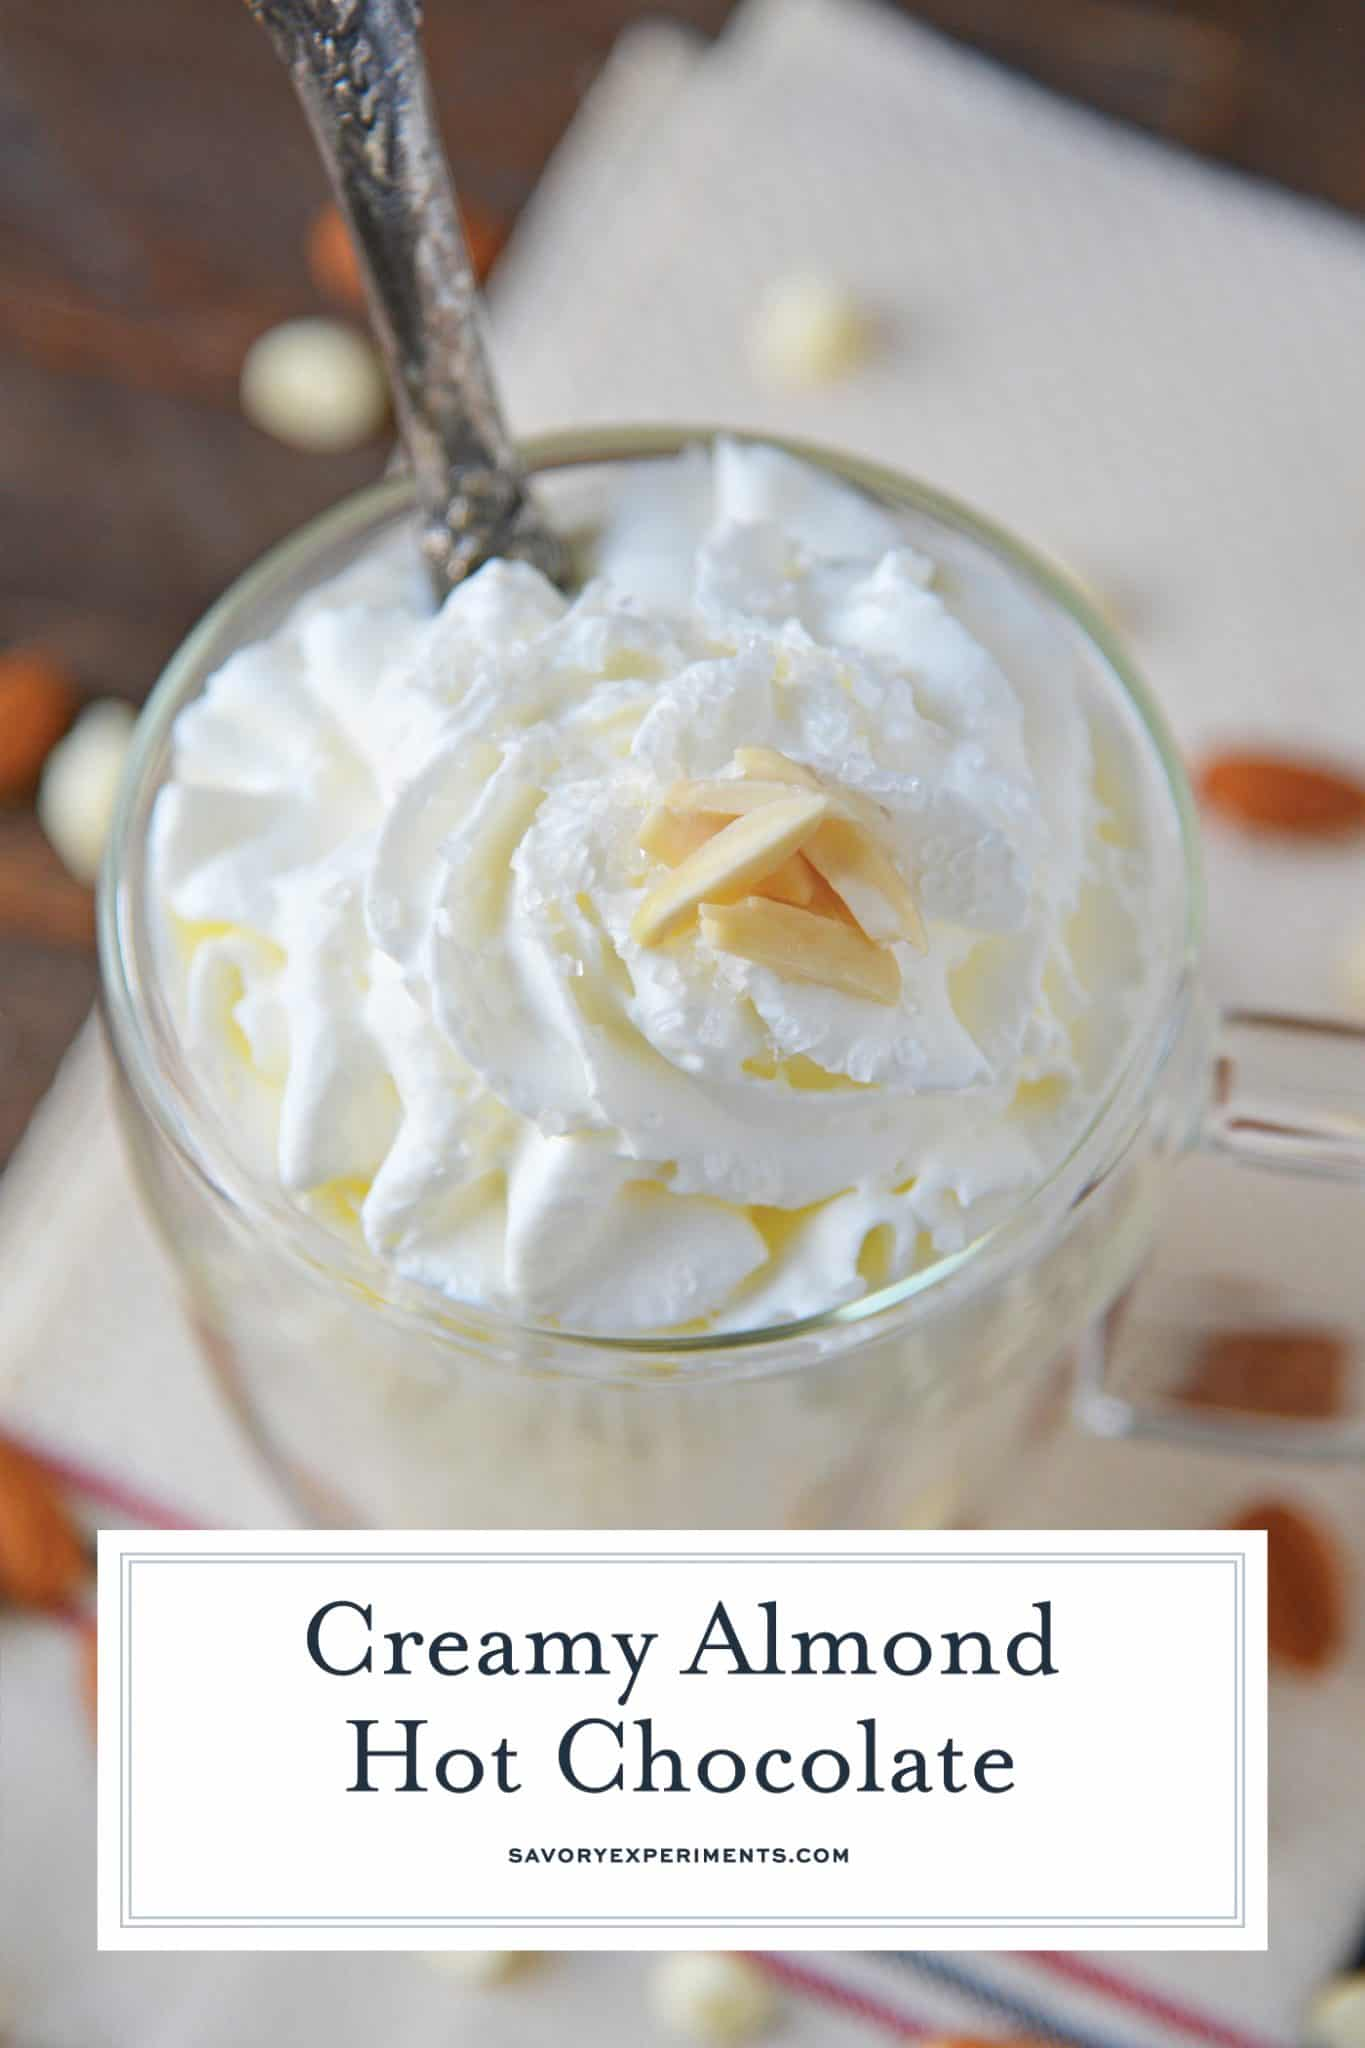 Almond Hot Chocolate is one of the most delicious white hot chocolate recipes to enjoy on a chilly night. Perfect for serving guests at parties too! #almondhotchocolate #whitehotchocolaterecipes www.savoryexperiments.com